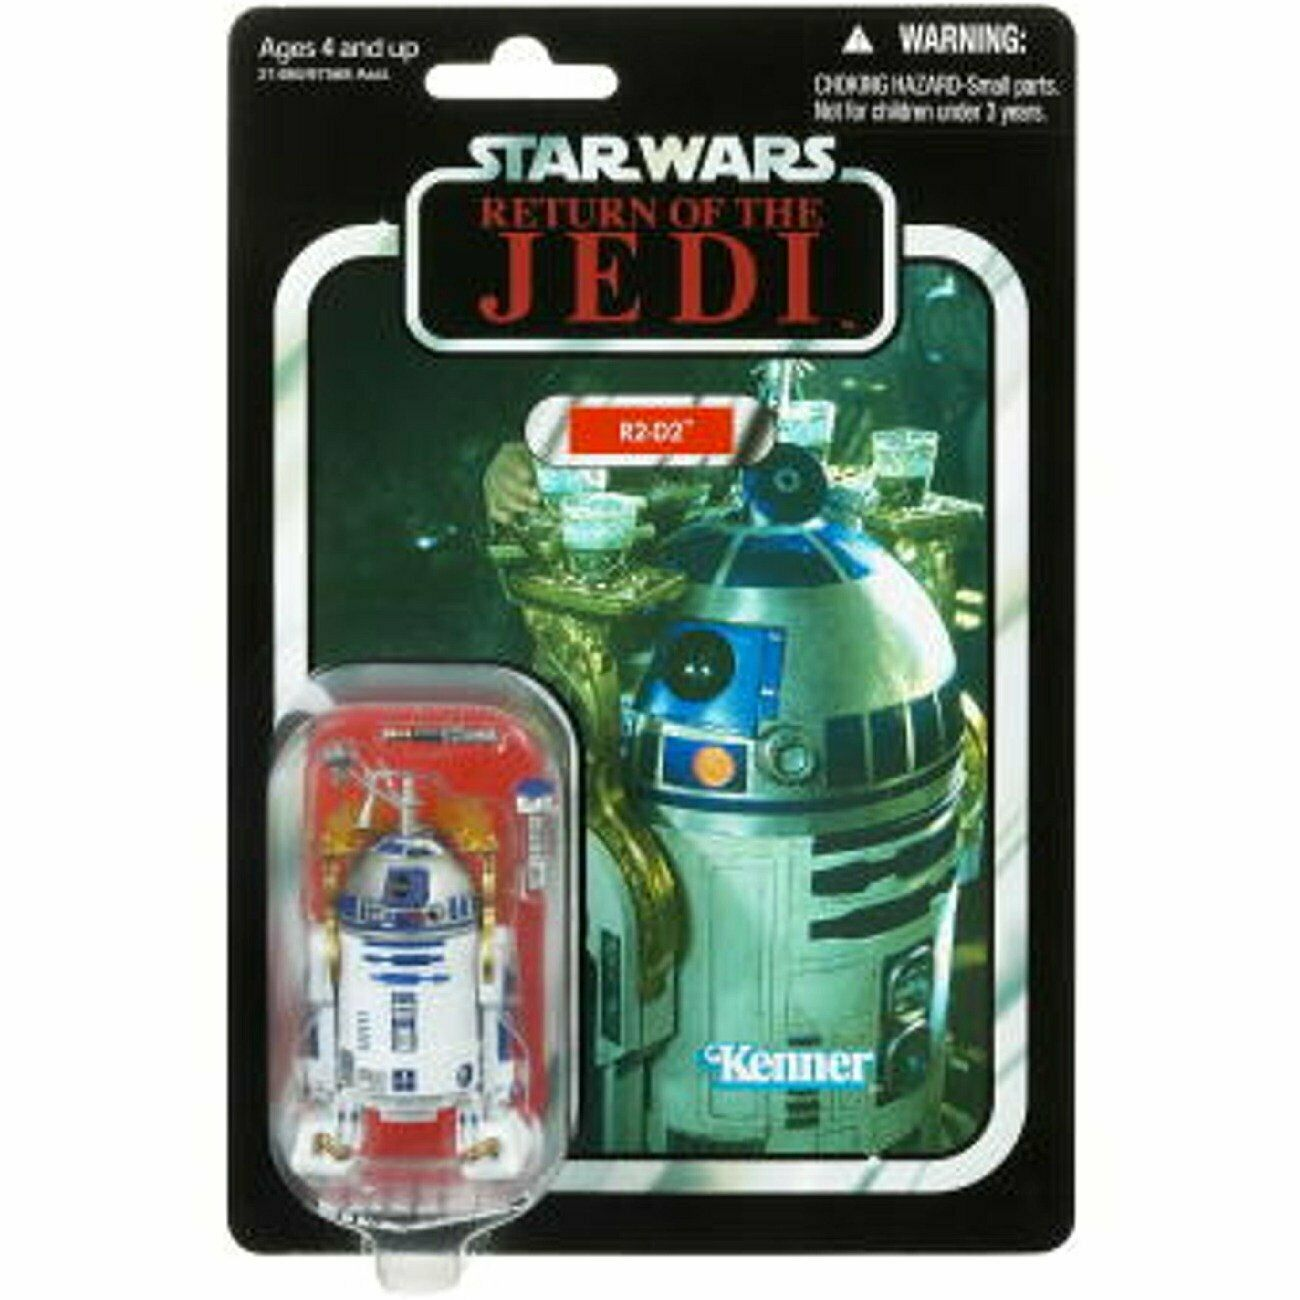 2010 Star Wars Vintage Collection Return of the Jedi R2-D2 MOC